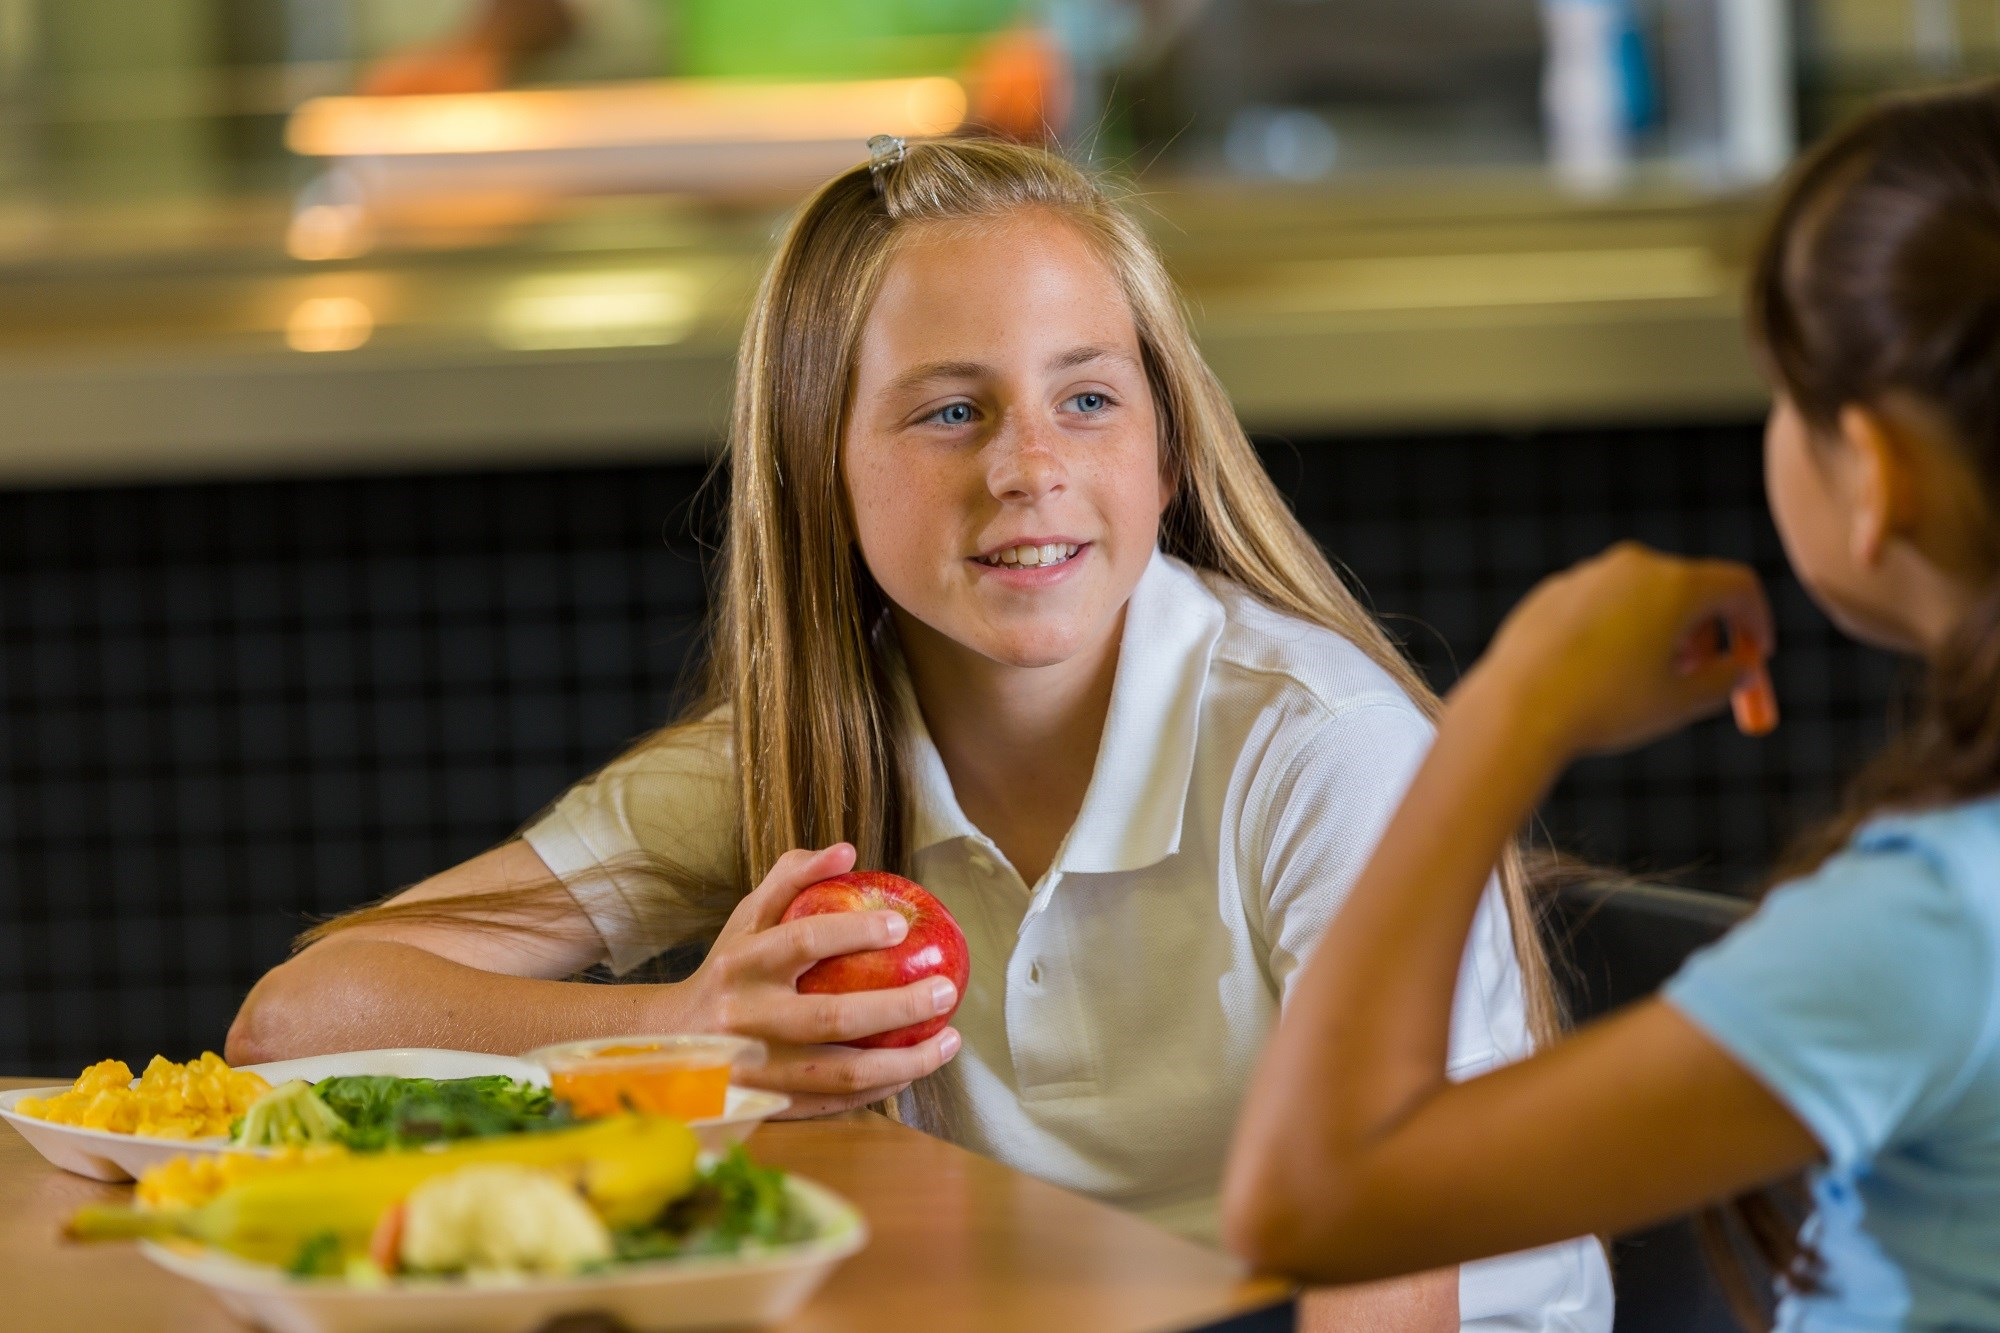 School Nutrition Programs Limit BMI Gains in Children